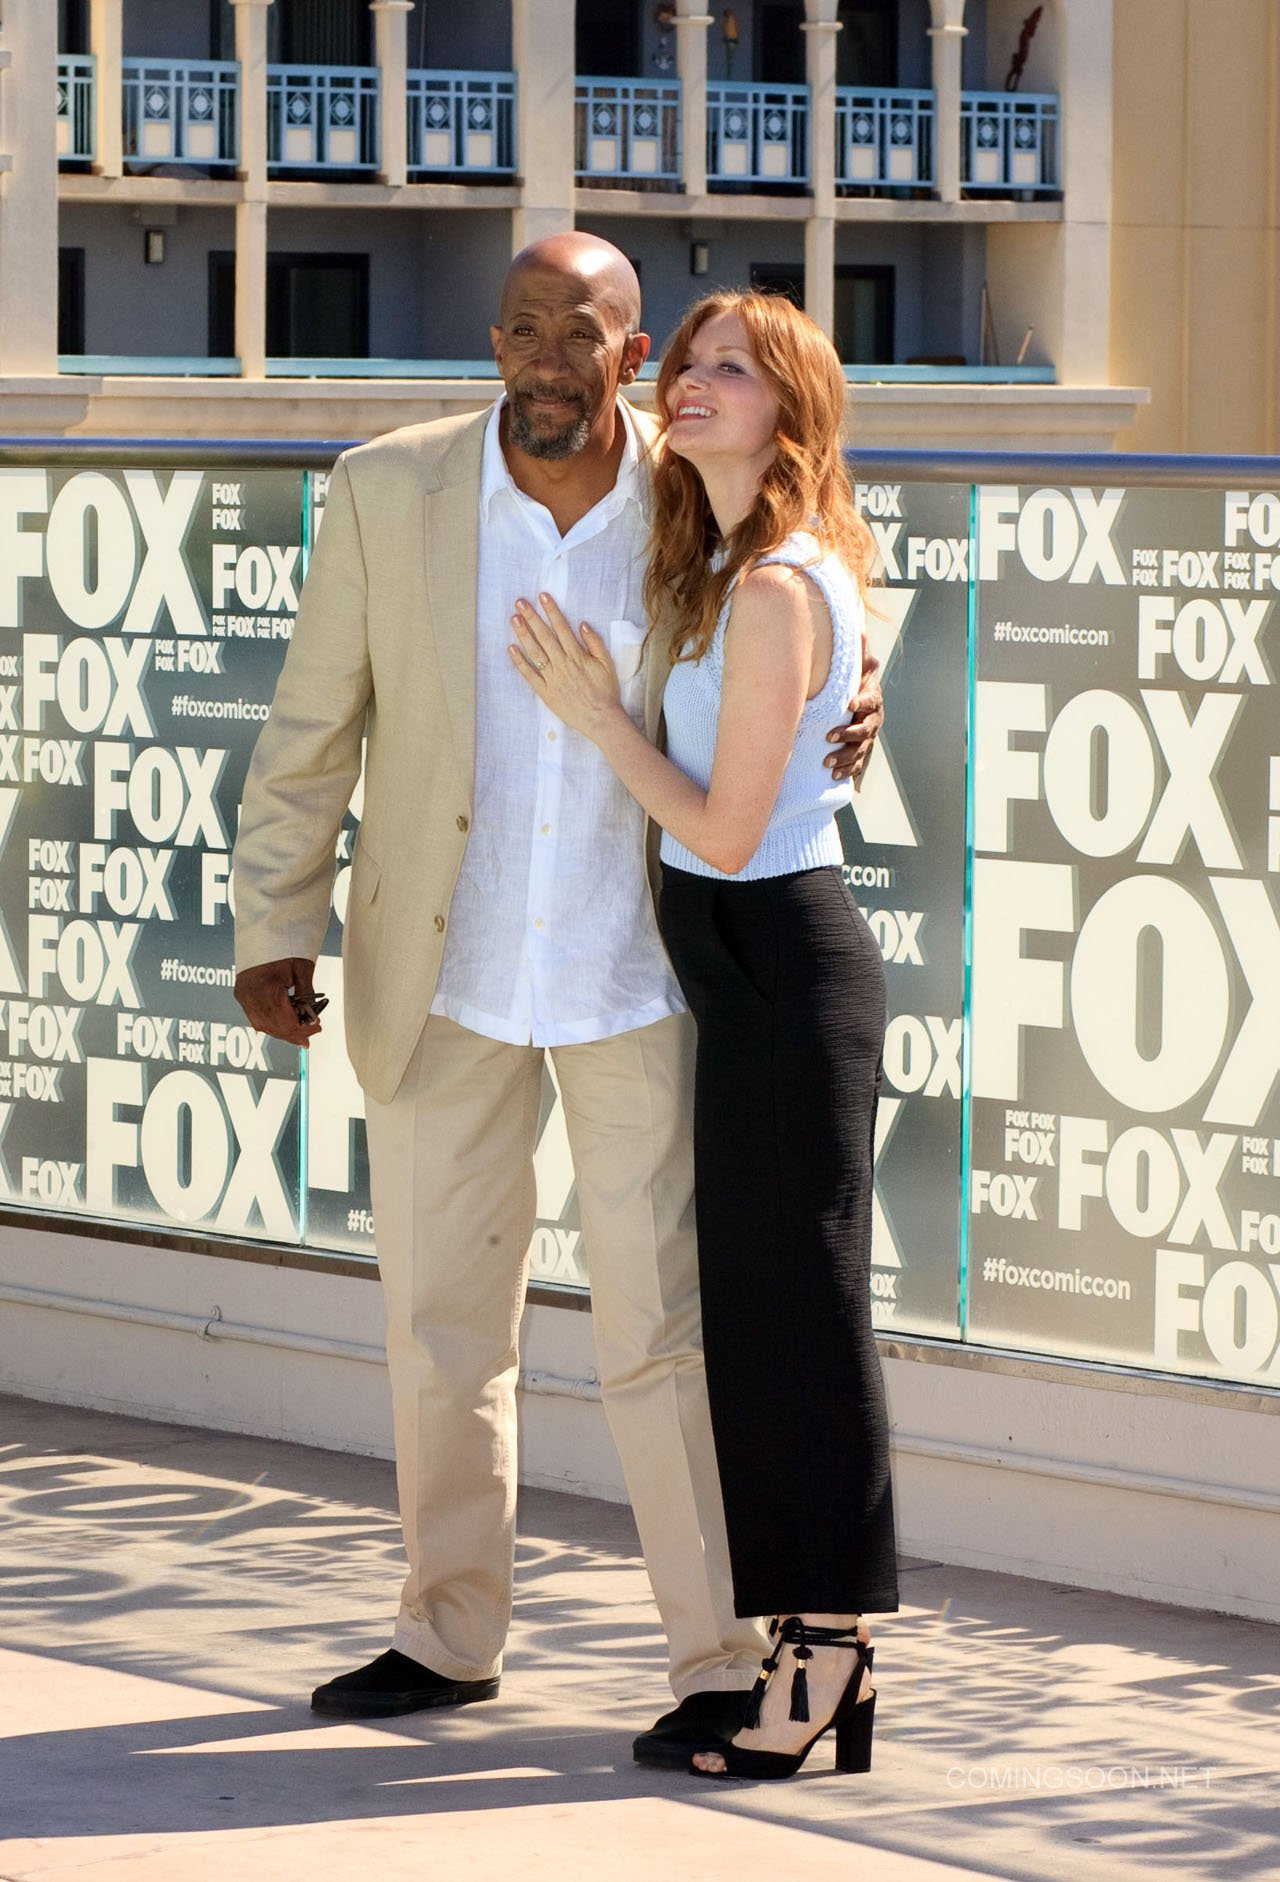 Fox Comic Con breakfast with the cast of Walking Dead and Outcast Featuring: Reg E. Cathey, Wren Schmidt Where: San Diego, California, United States When: 22 Jul 2016 Credit: Tony Forte/WENN